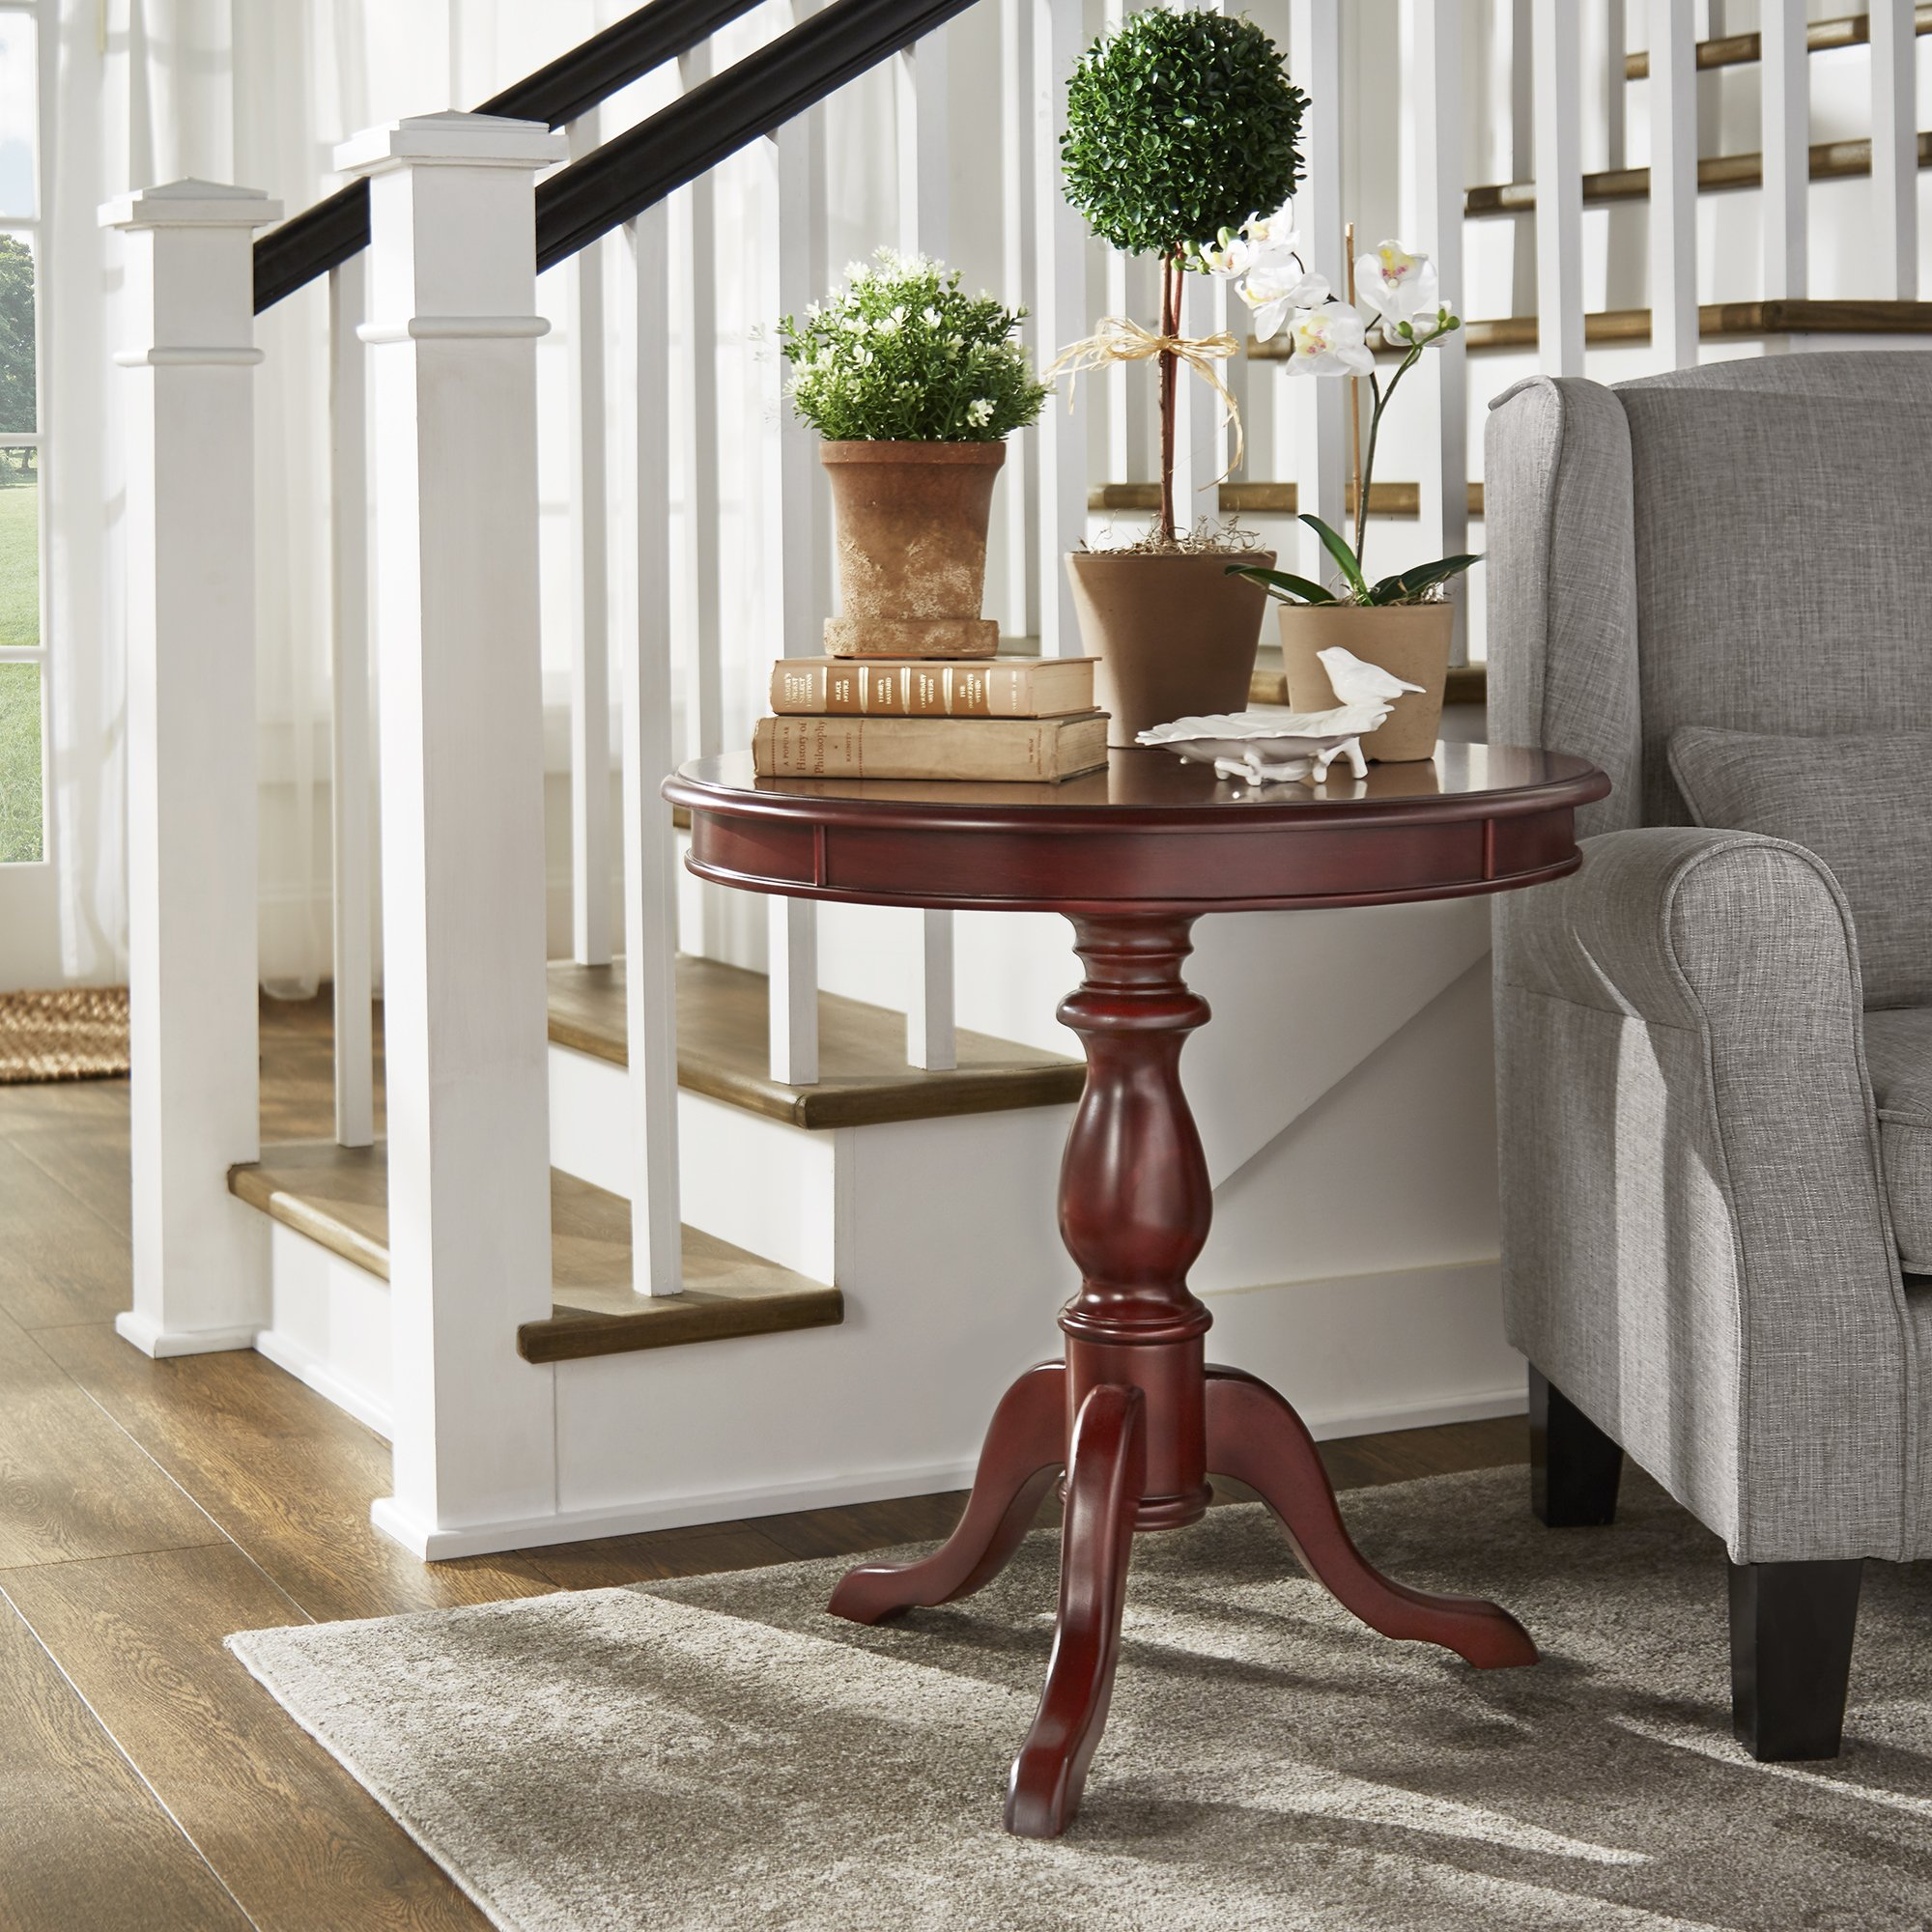 beckett antique wood pedestal accent table inspire classic free shipping today west elm round mirror cymbal stand decorative inch covers long black coffee outdoor plans tiffany